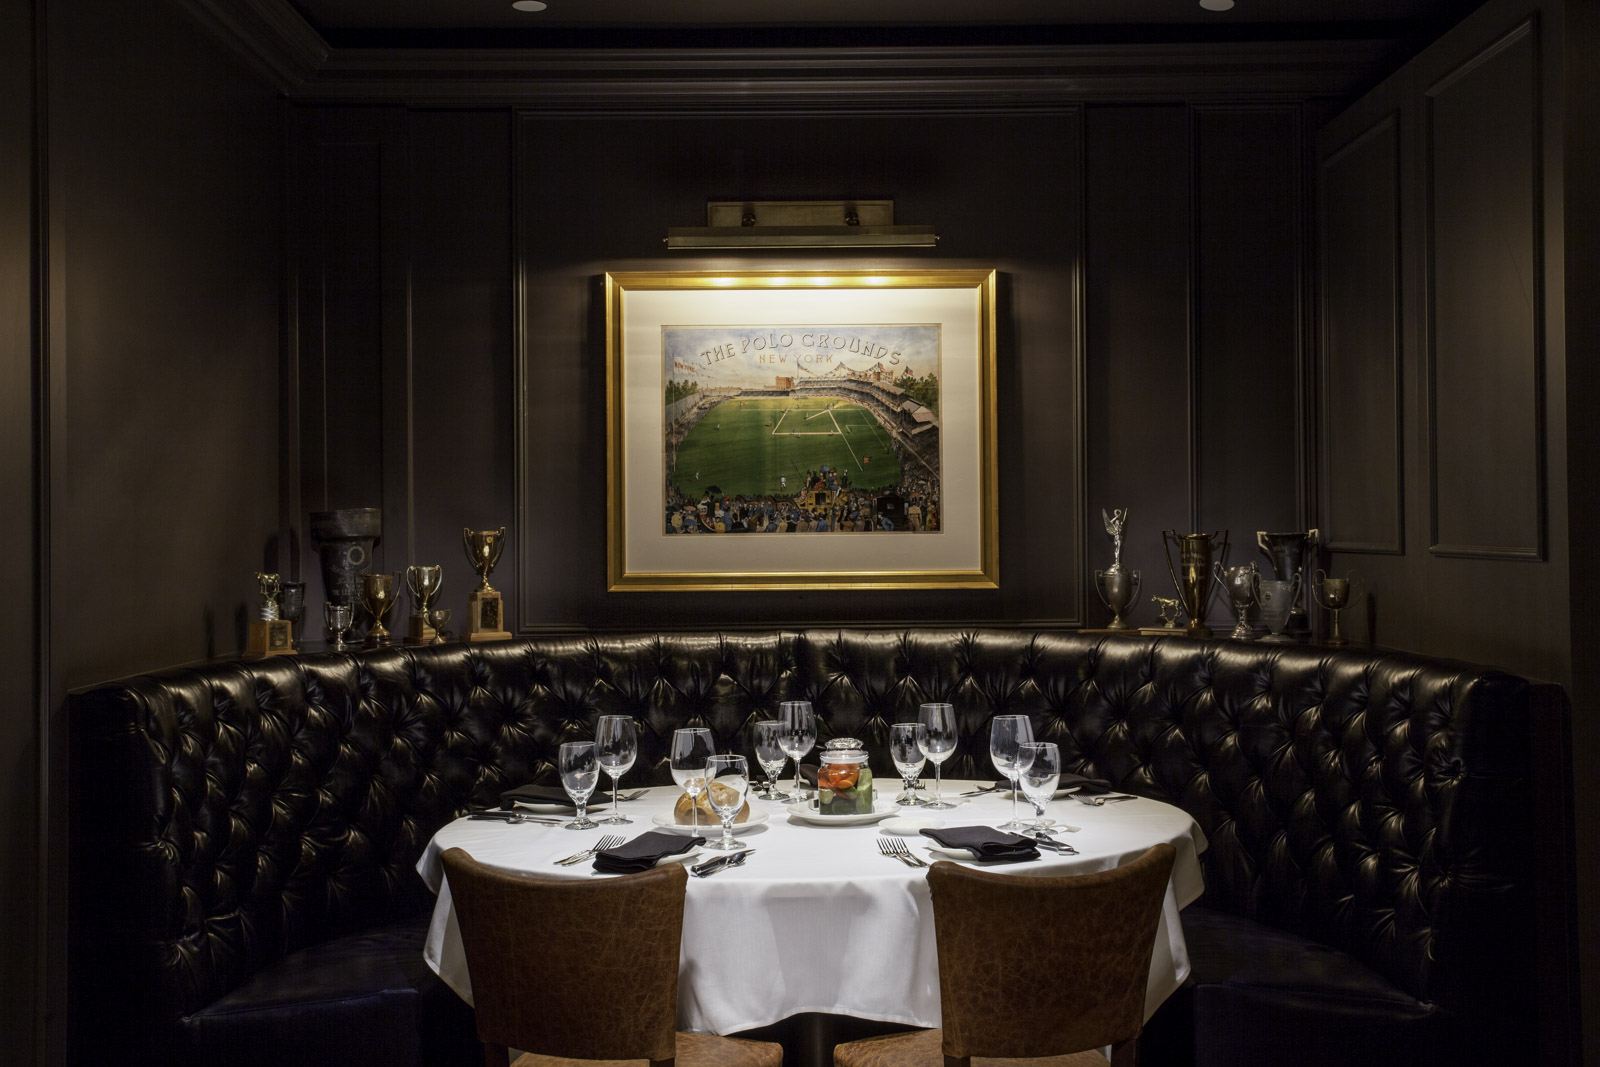 Bob's Steak & Chop House - New York City, NY (Dining Room)